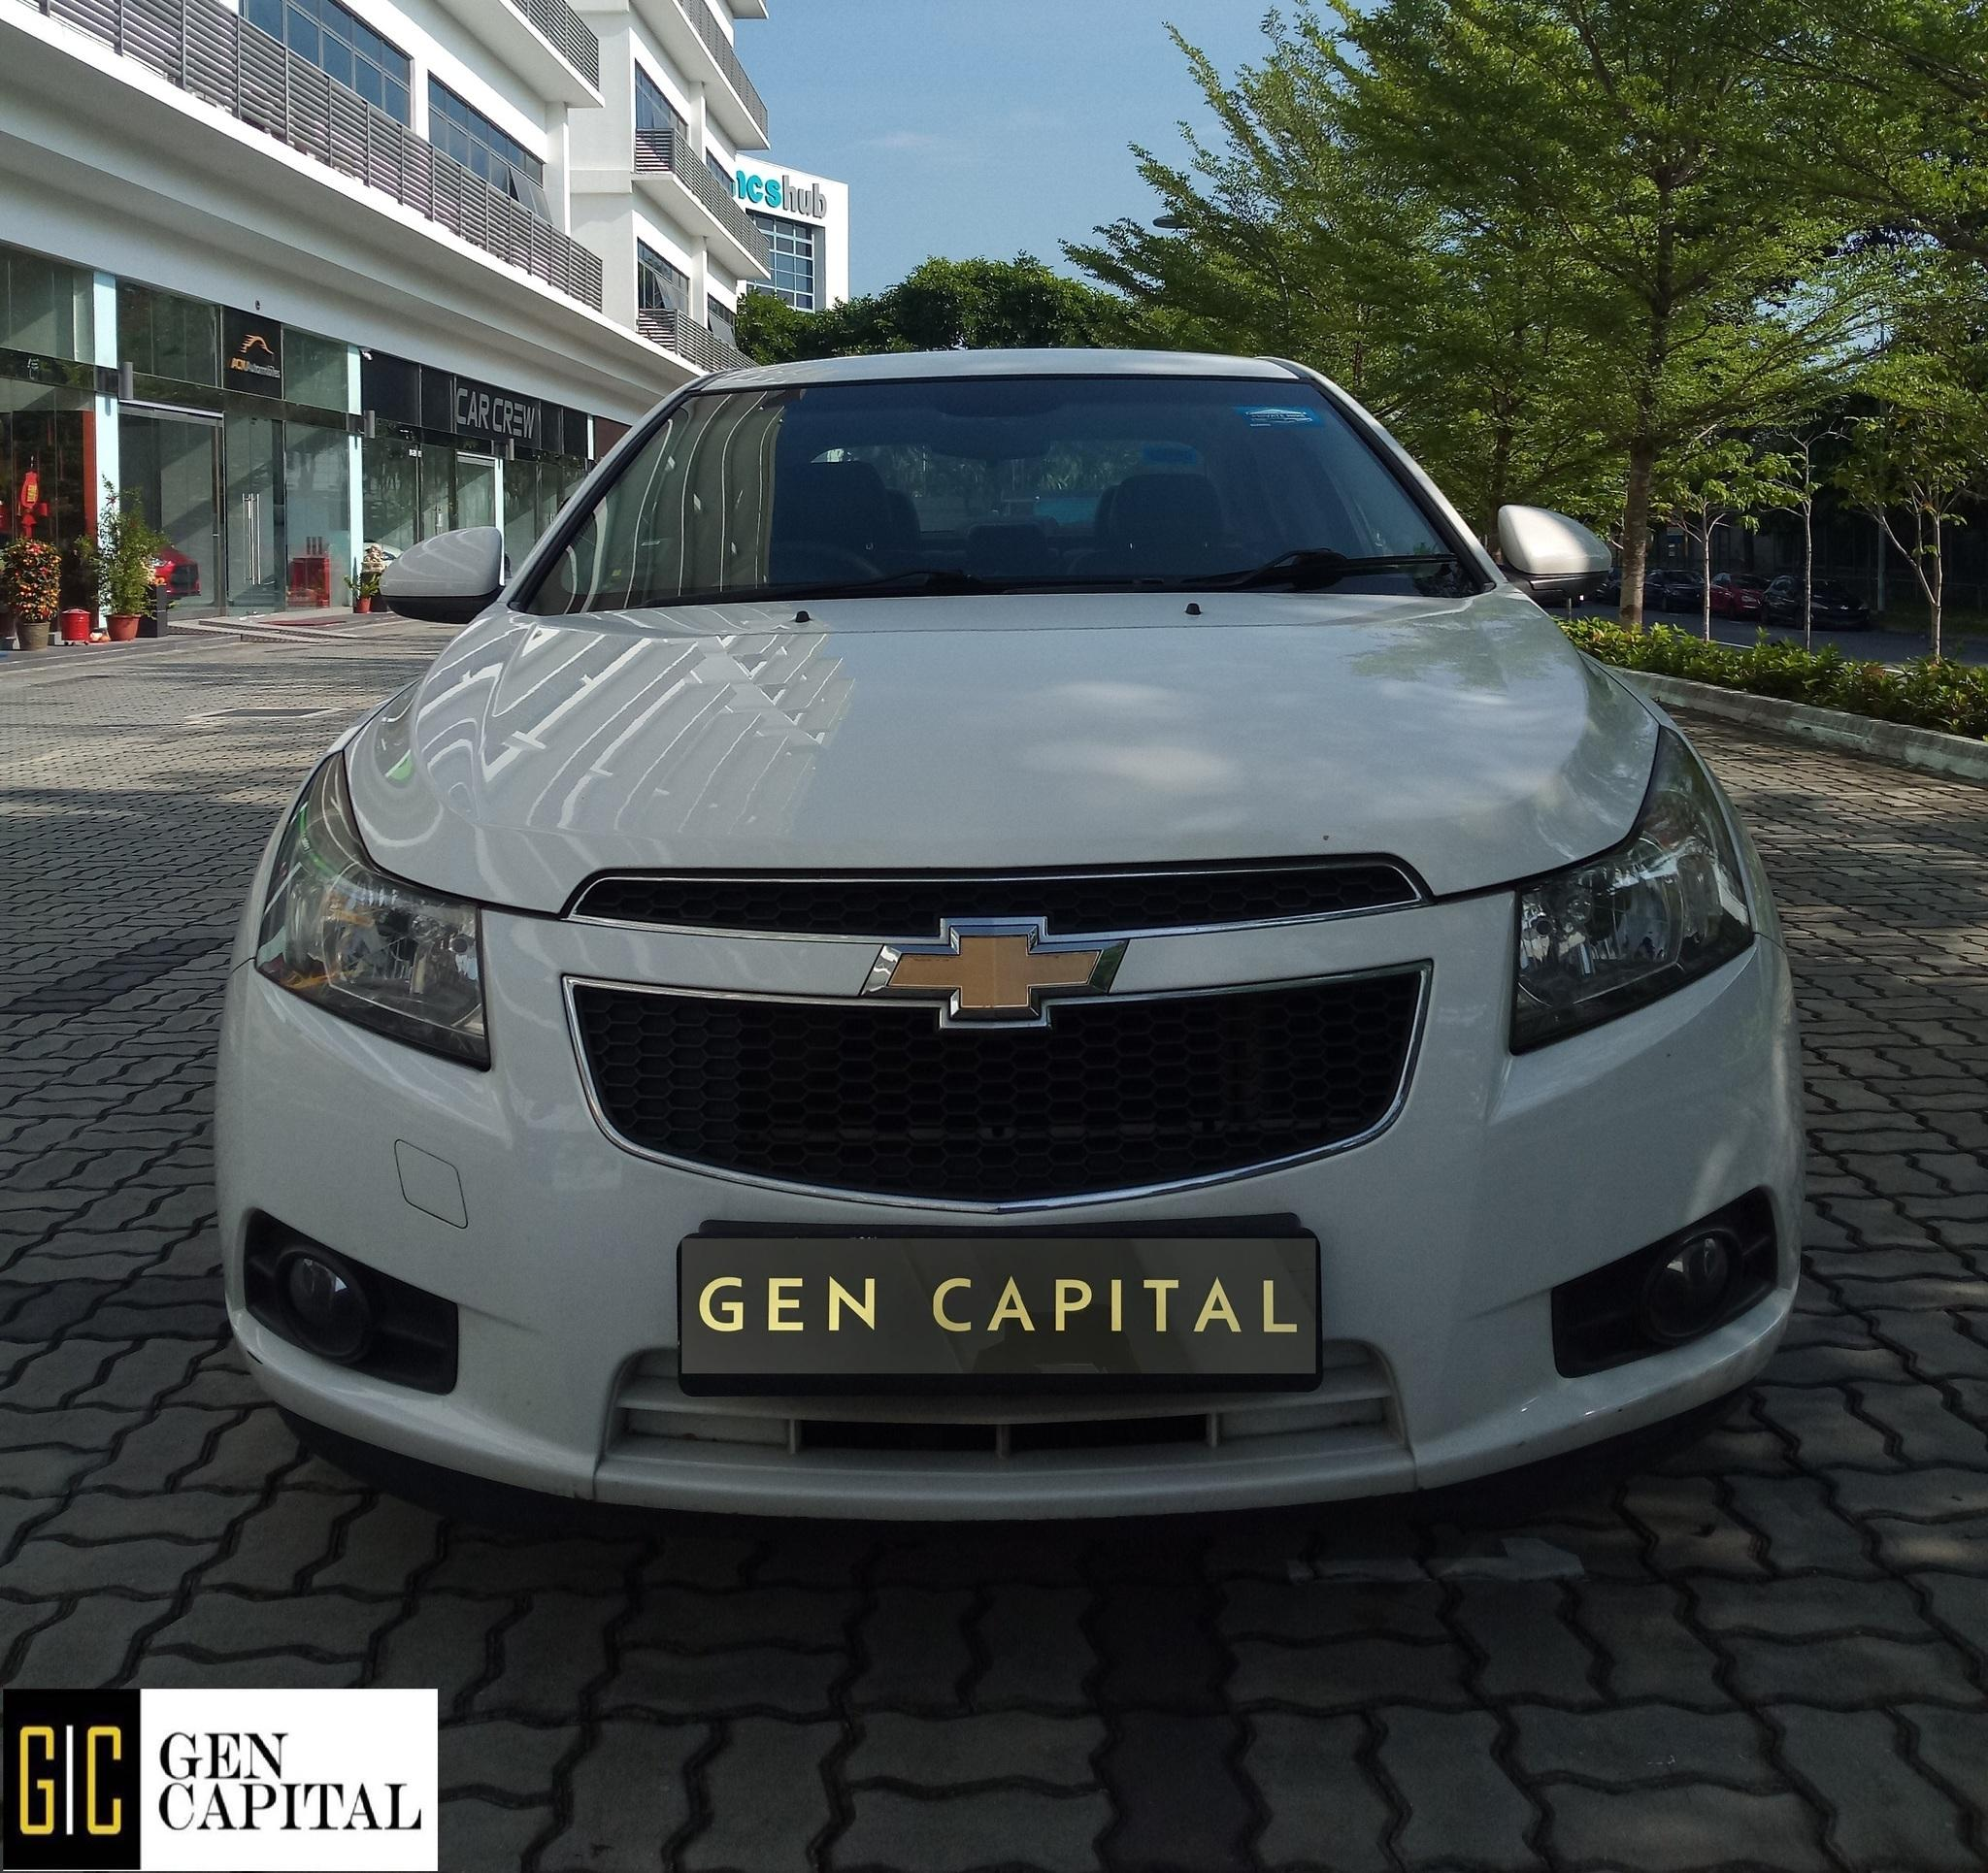 Chevrolet Cruze 1.6A Sedan Nice and Stable Car for Personal/PHV Usage